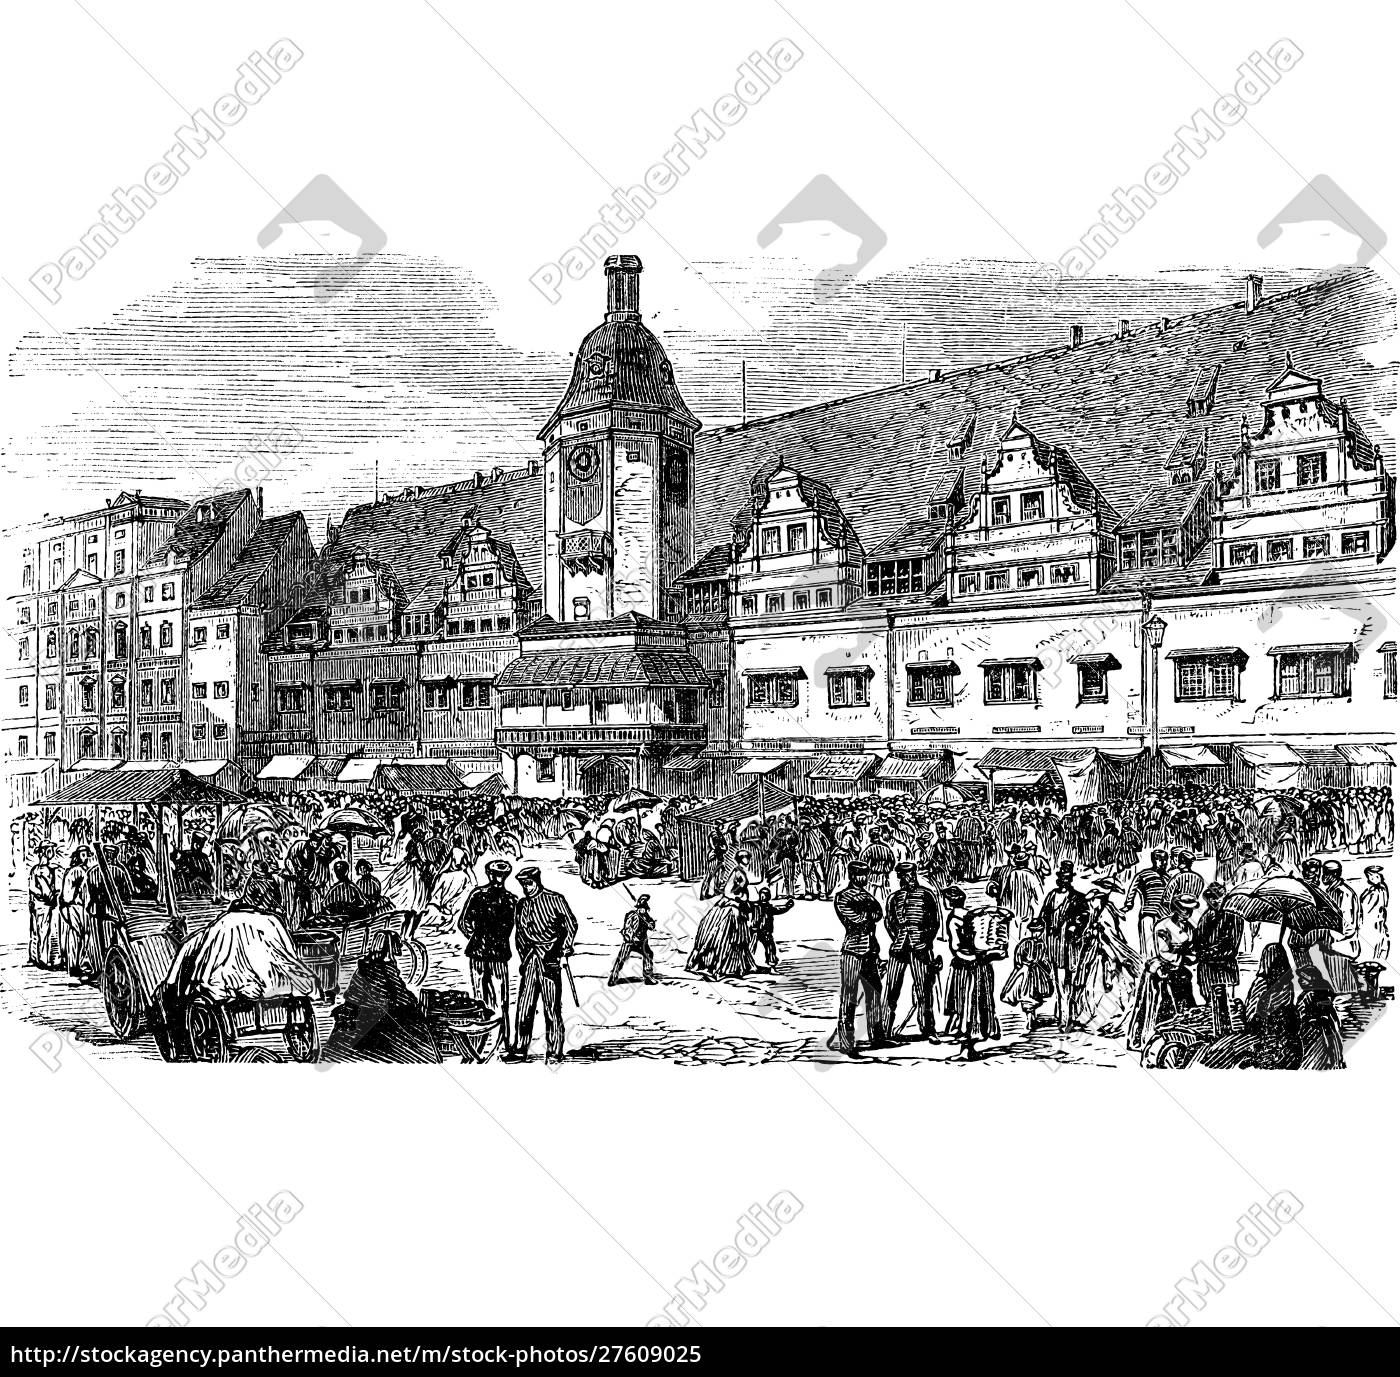 city, hall, and, market, place, in - 27609025